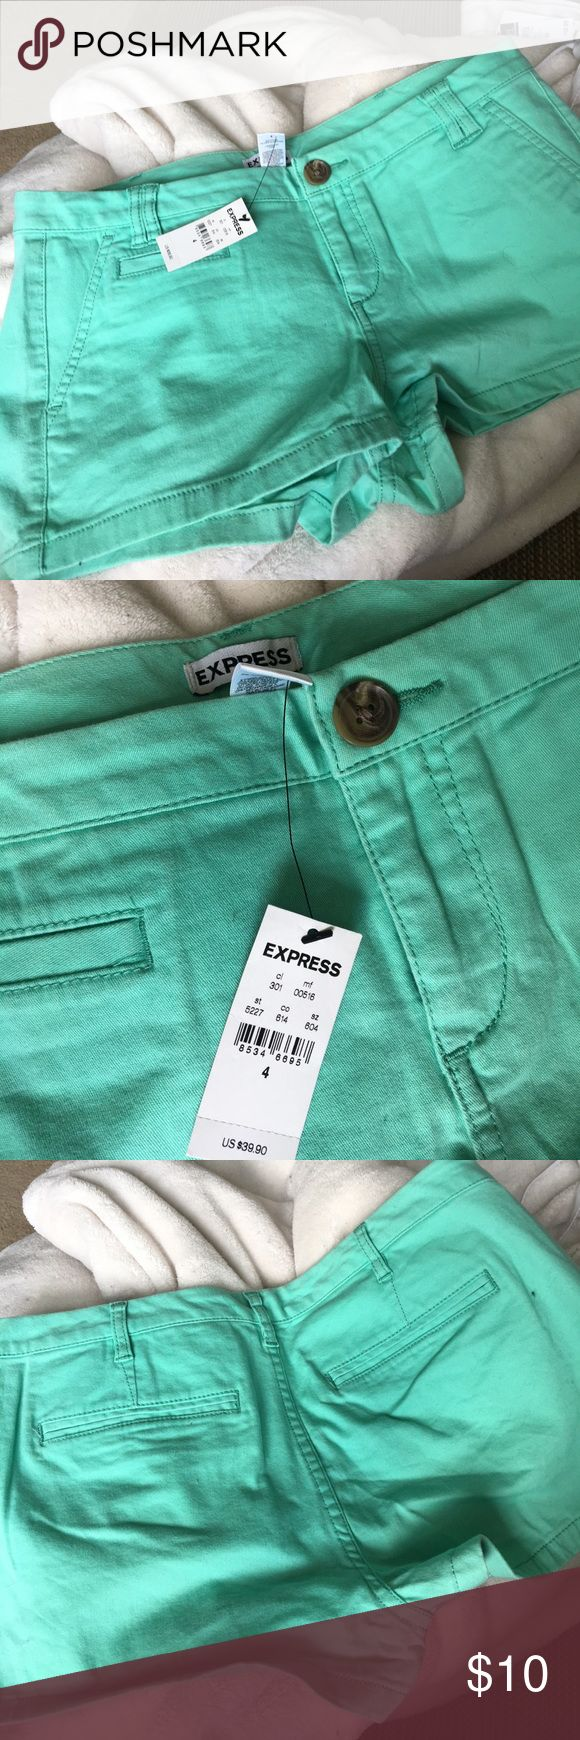 NEW EXPRESS Mint Green shorts NWT EXPRESS Mint Green shorts. Make an offer! Express Shorts